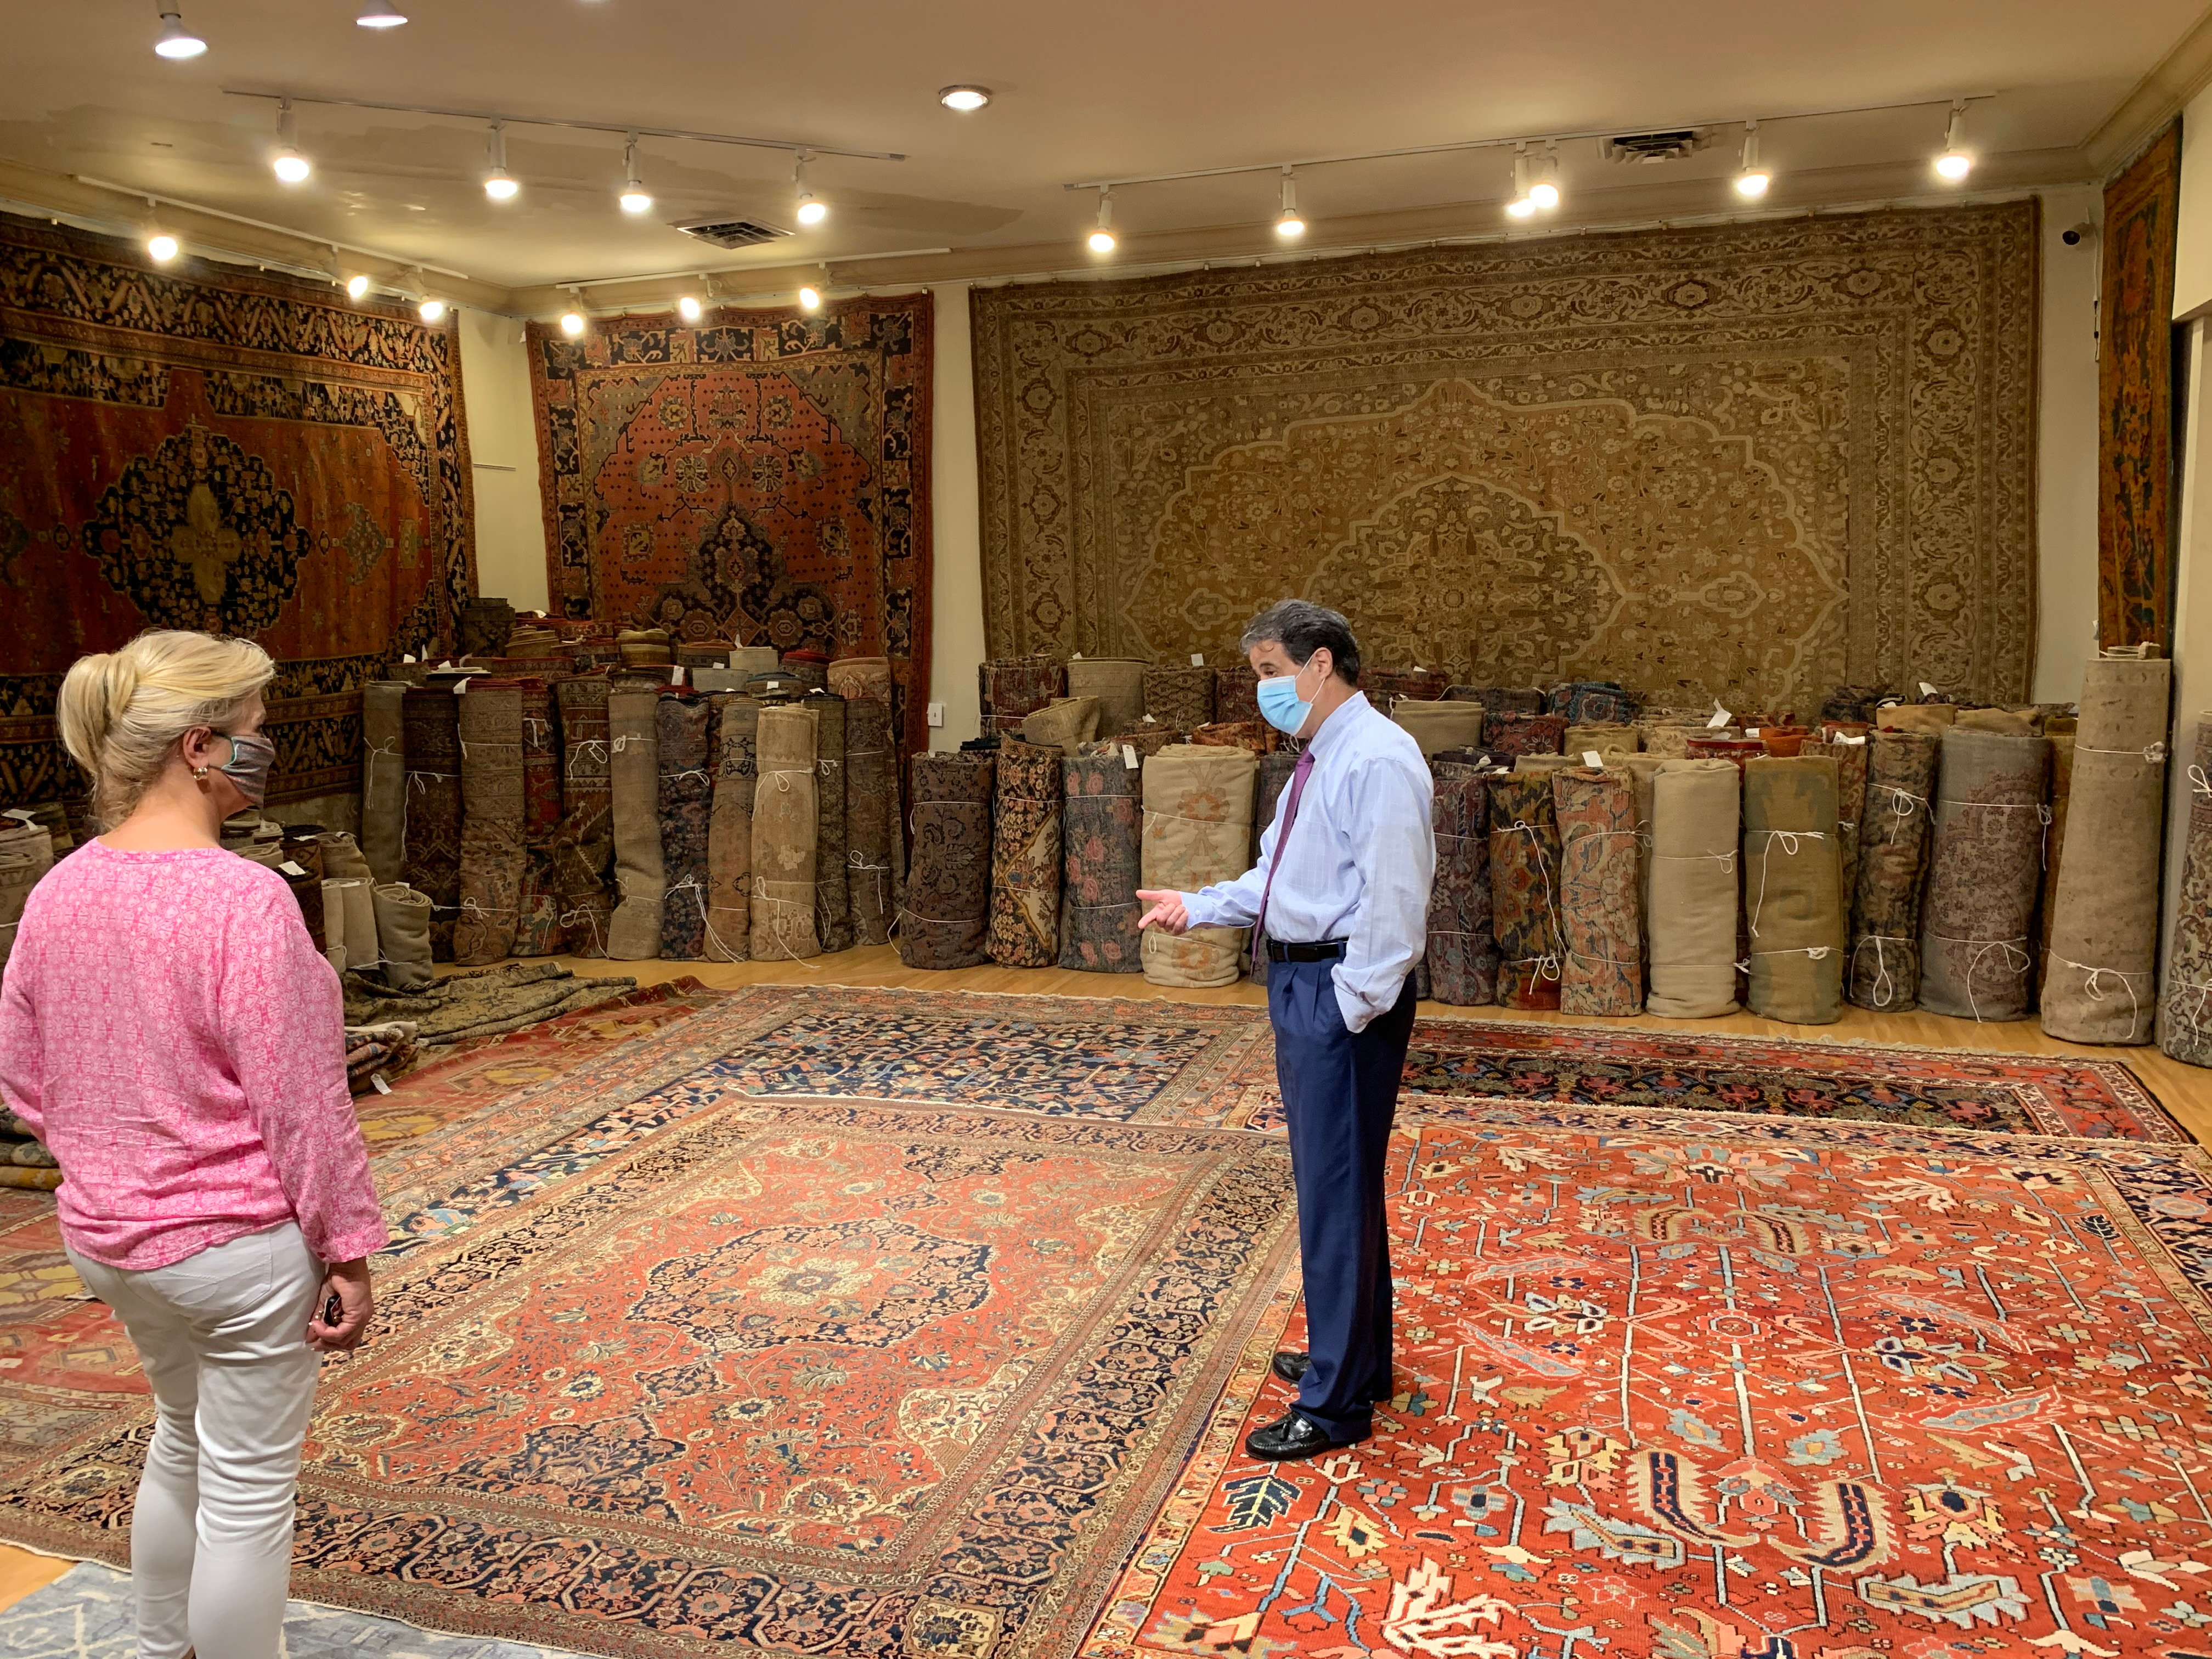 Private session to Show items in Gallery